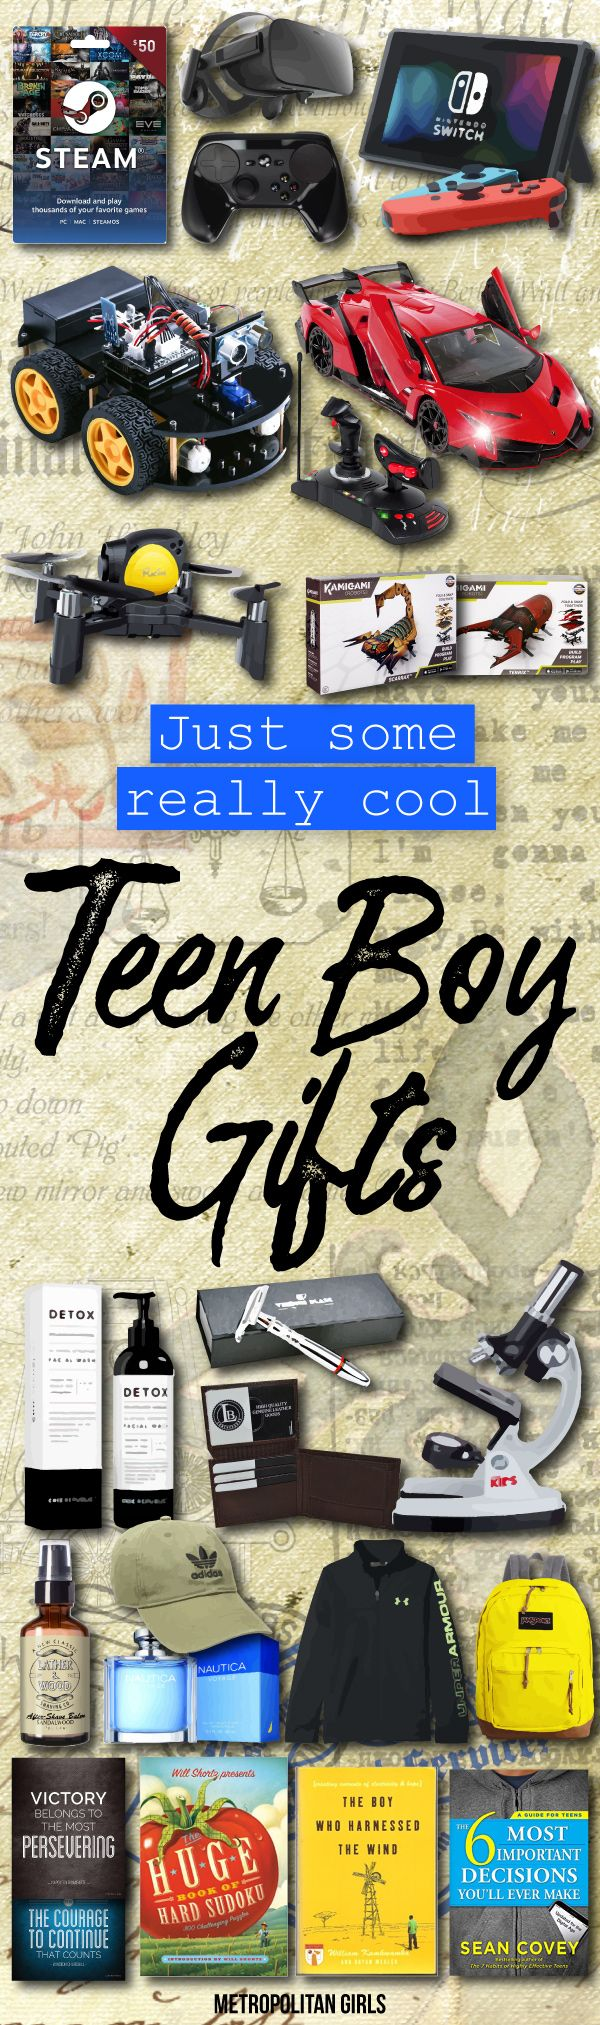 Teen Boy Gifts | Gift ideas. | Pinterest | Gifts for teen boys ...